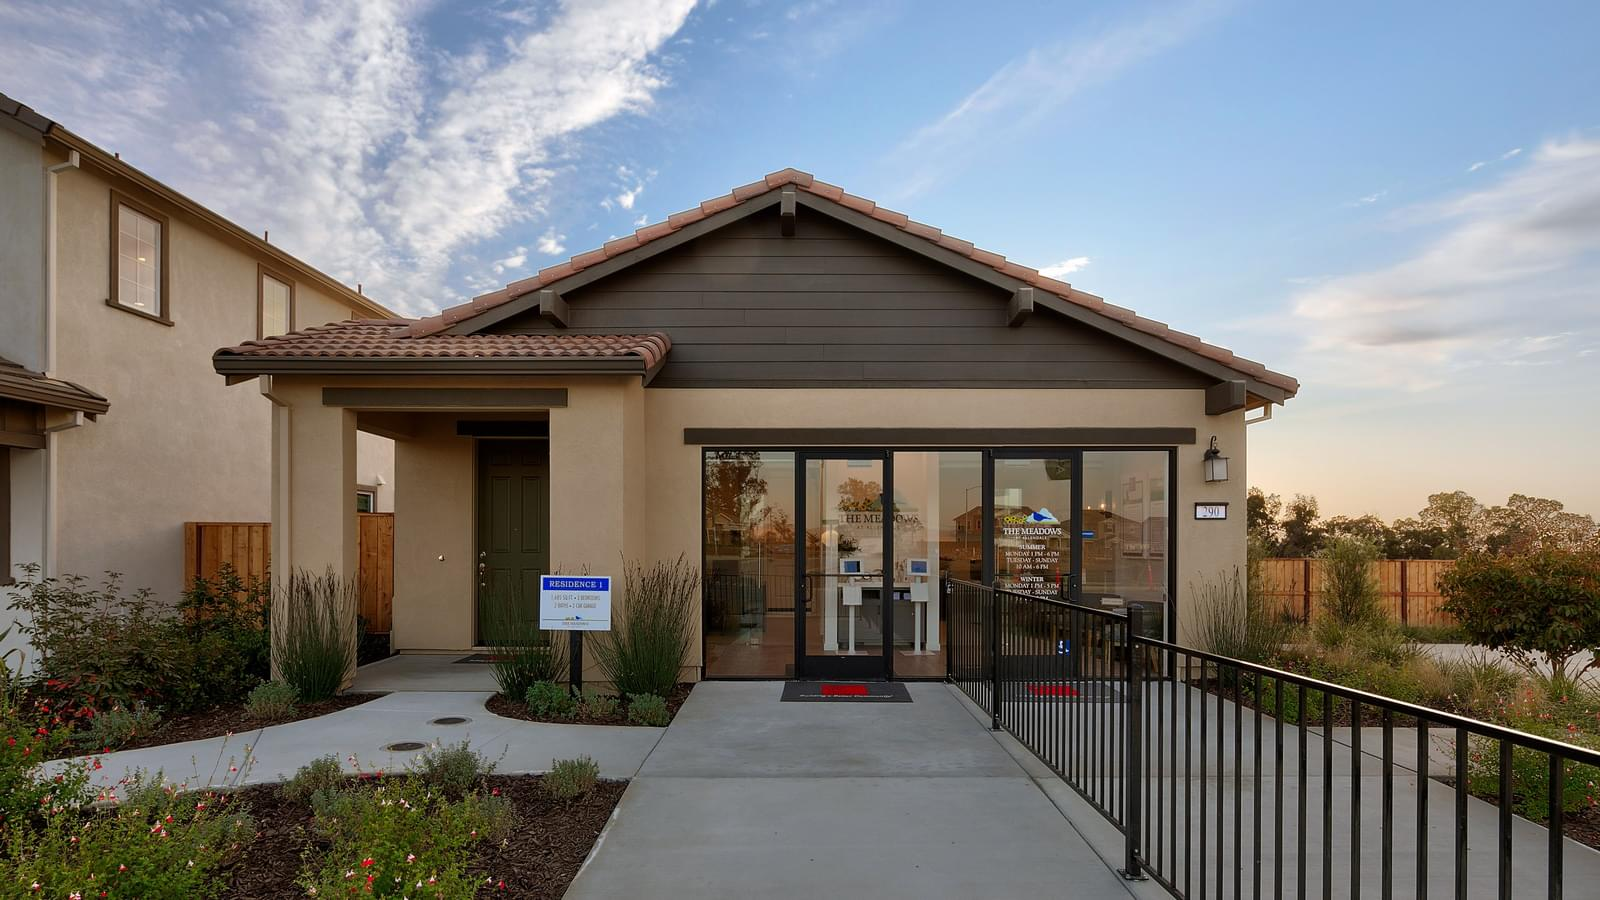 290 Tanoak Street in Hollister, CA by DeNova Homes